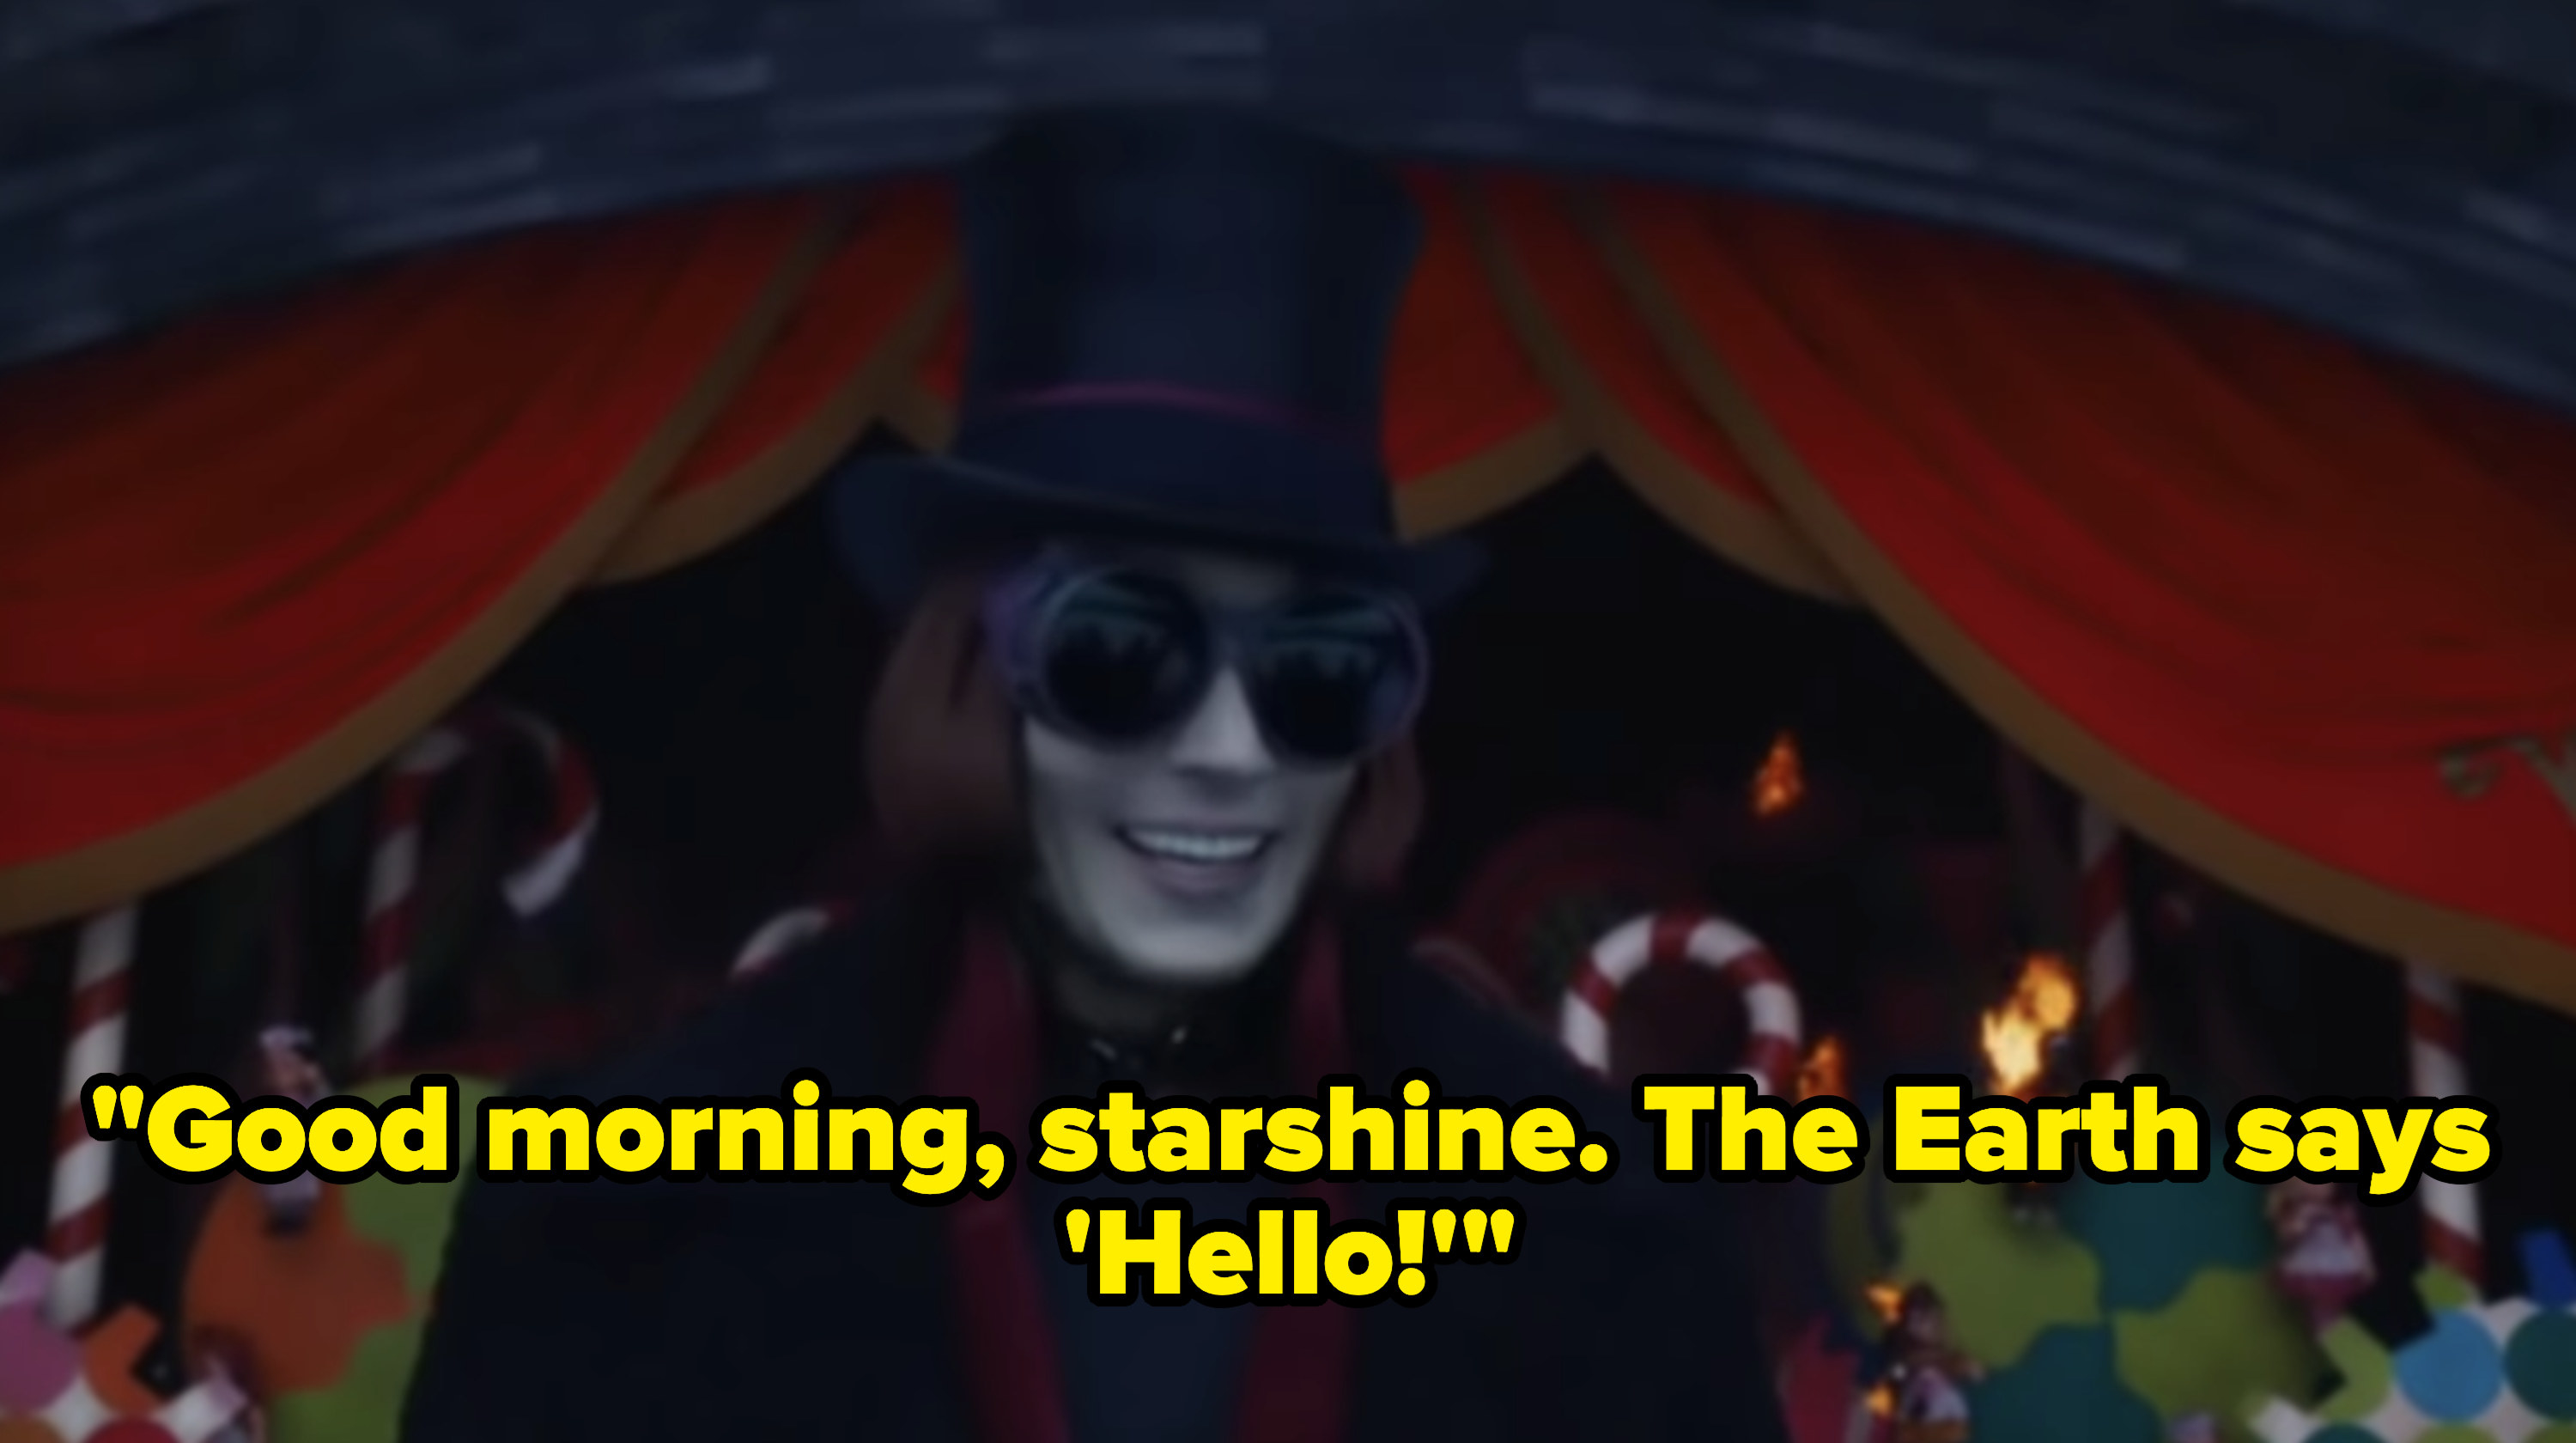 Willy Wonka greeting his guests.